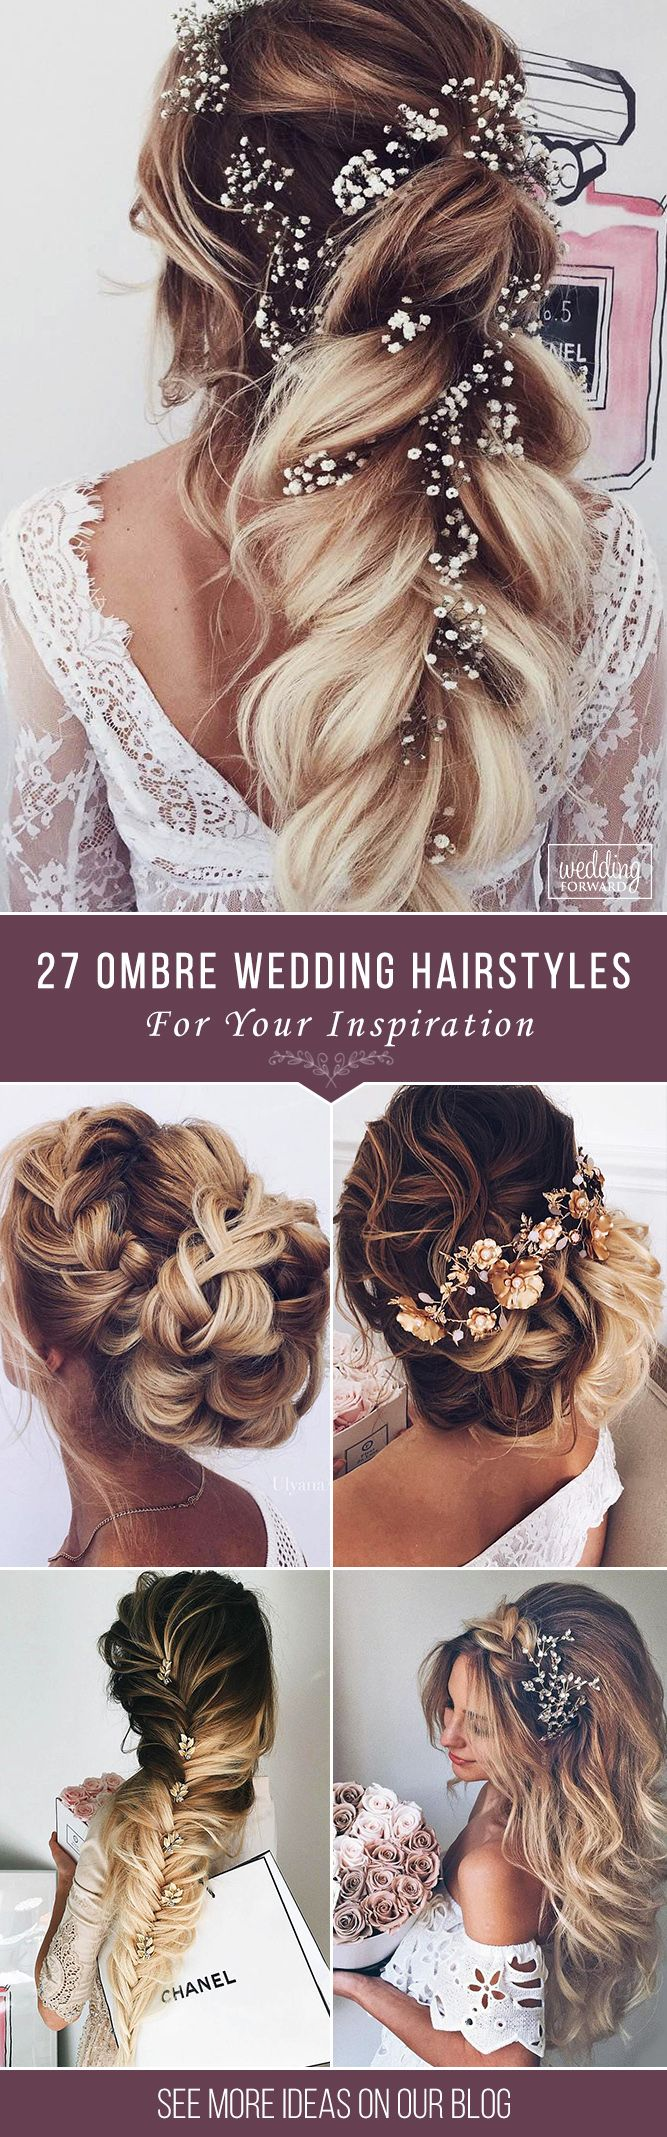 27 Modish Ombre Wedding Hairstyles ❤ Ombre wedding hairstyles are on trend this year. Here are sizzling solutions for black, brown and blond hair. Technique looks good on long and short hair. See more: http://www.weddingforward.com/ombre-wedding-hairstyles/ #weddings #hairstyles